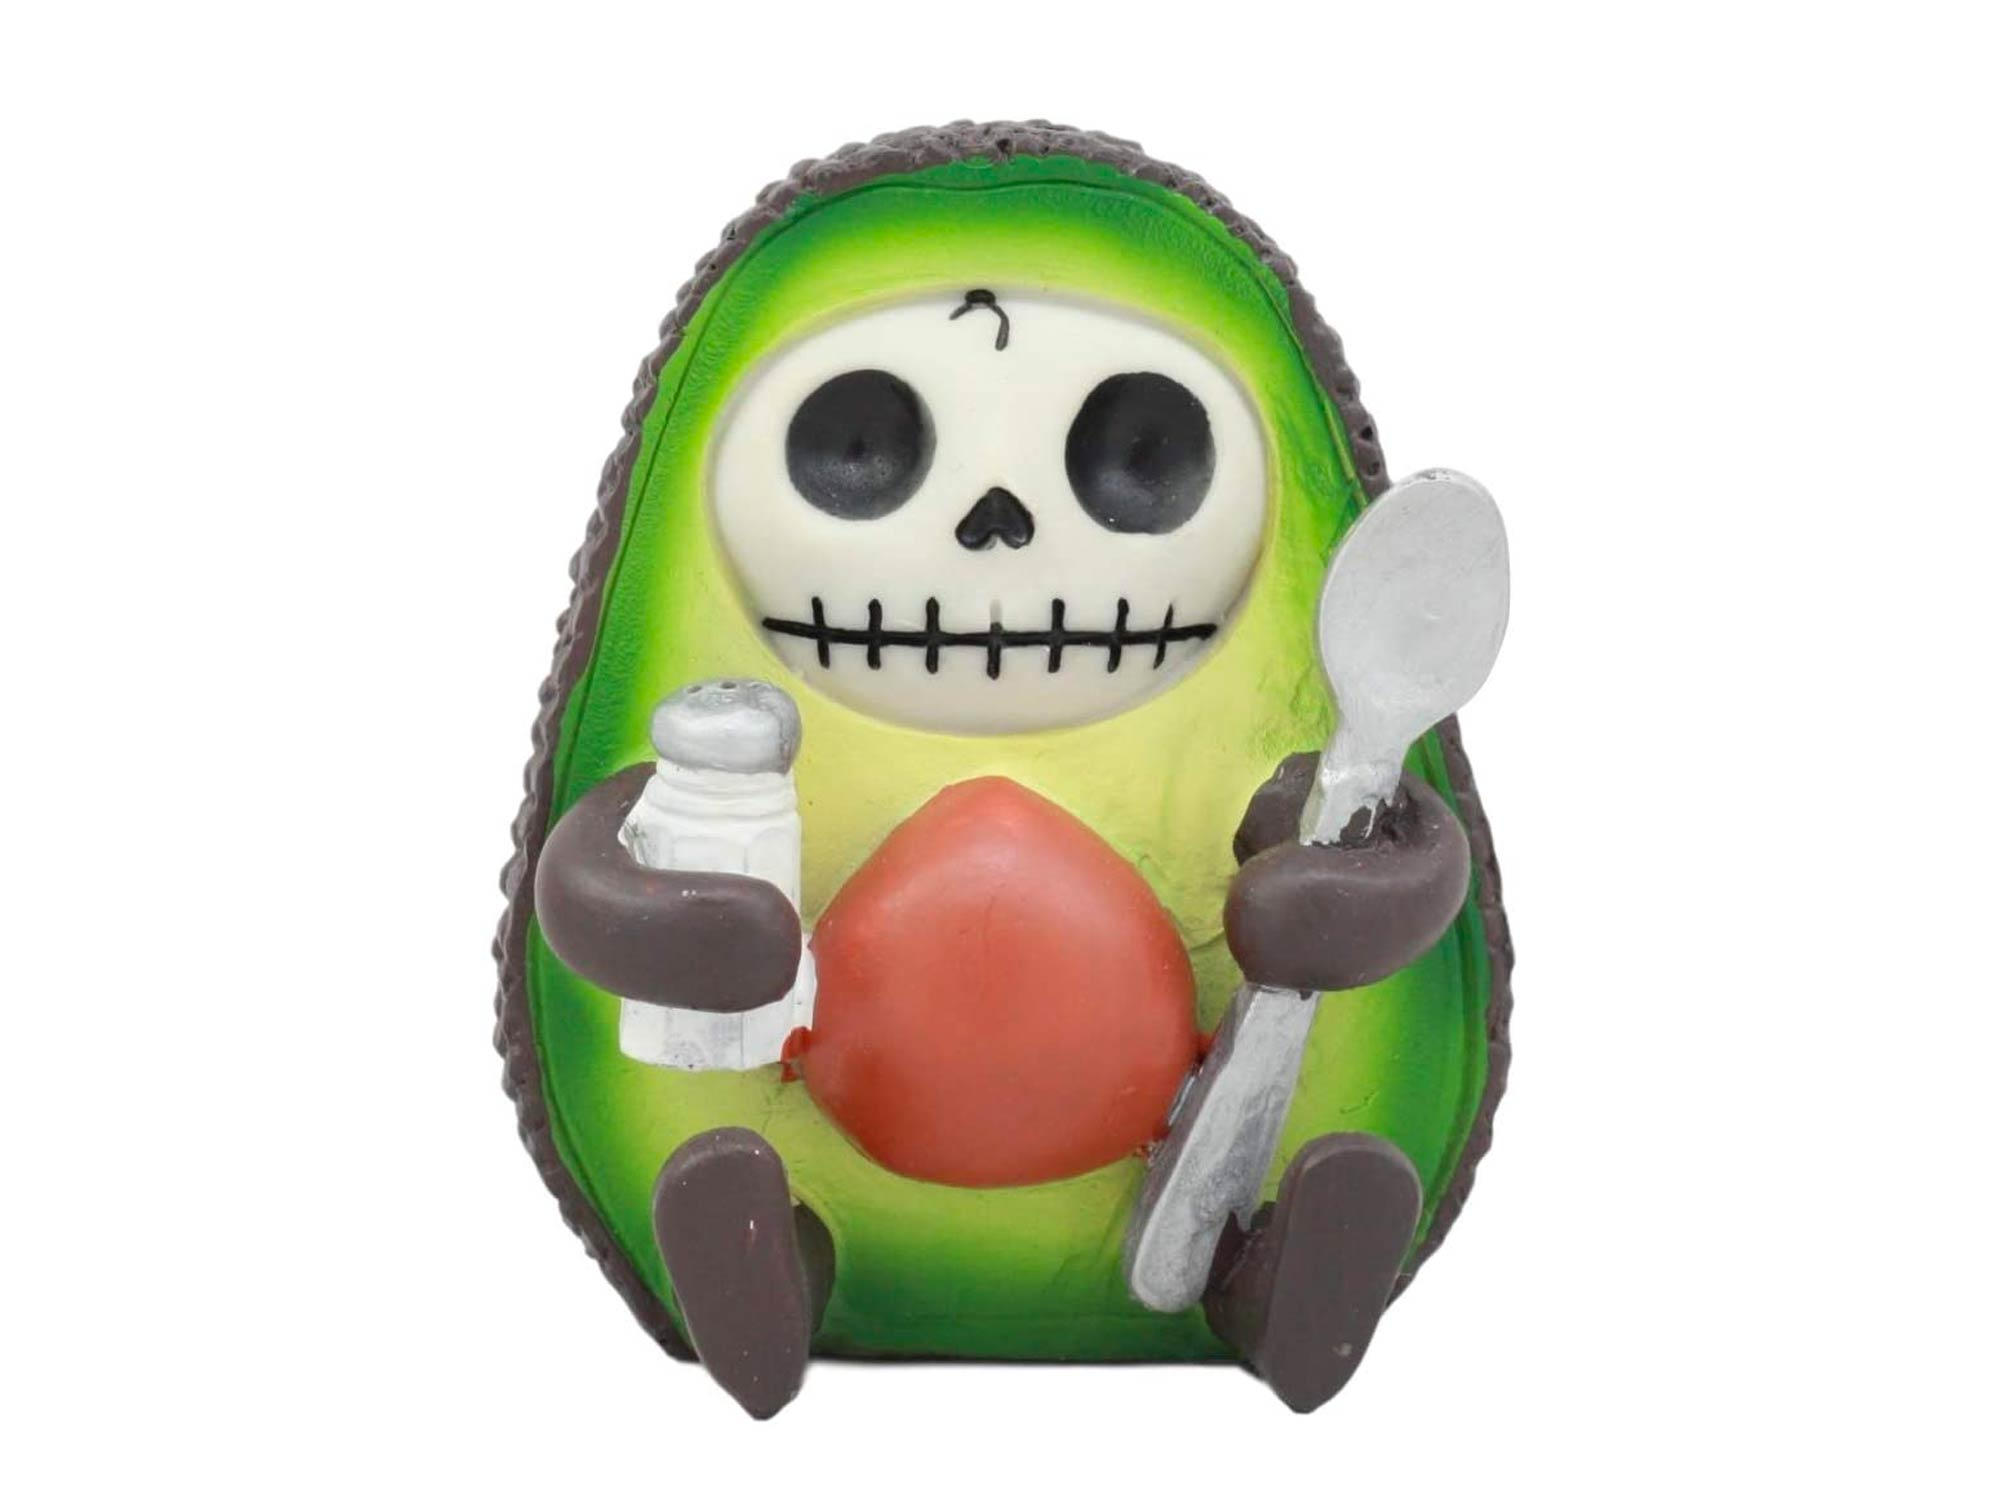 Ebros Gourmet Furrybones HASS Avocado Figurine Small 2.75 Inch Furry Bones Skeleton Decor Statue